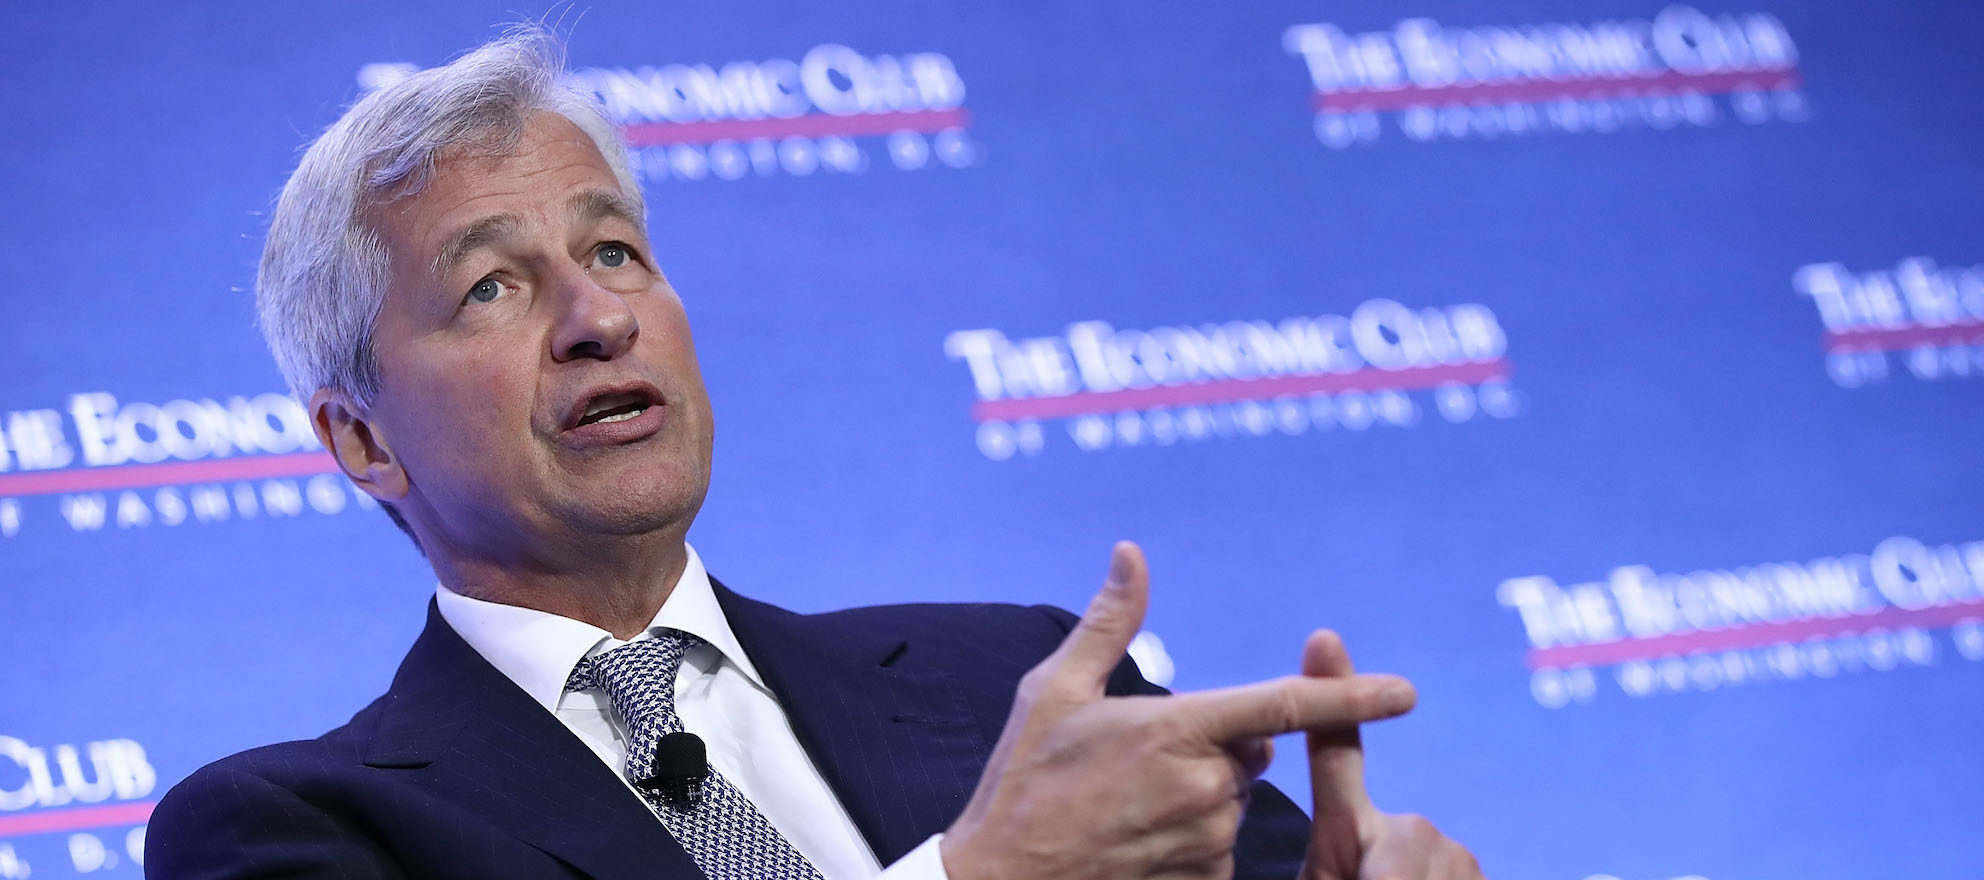 JPMorgan Chase CEO says US 'desperately needs mortgage reform'